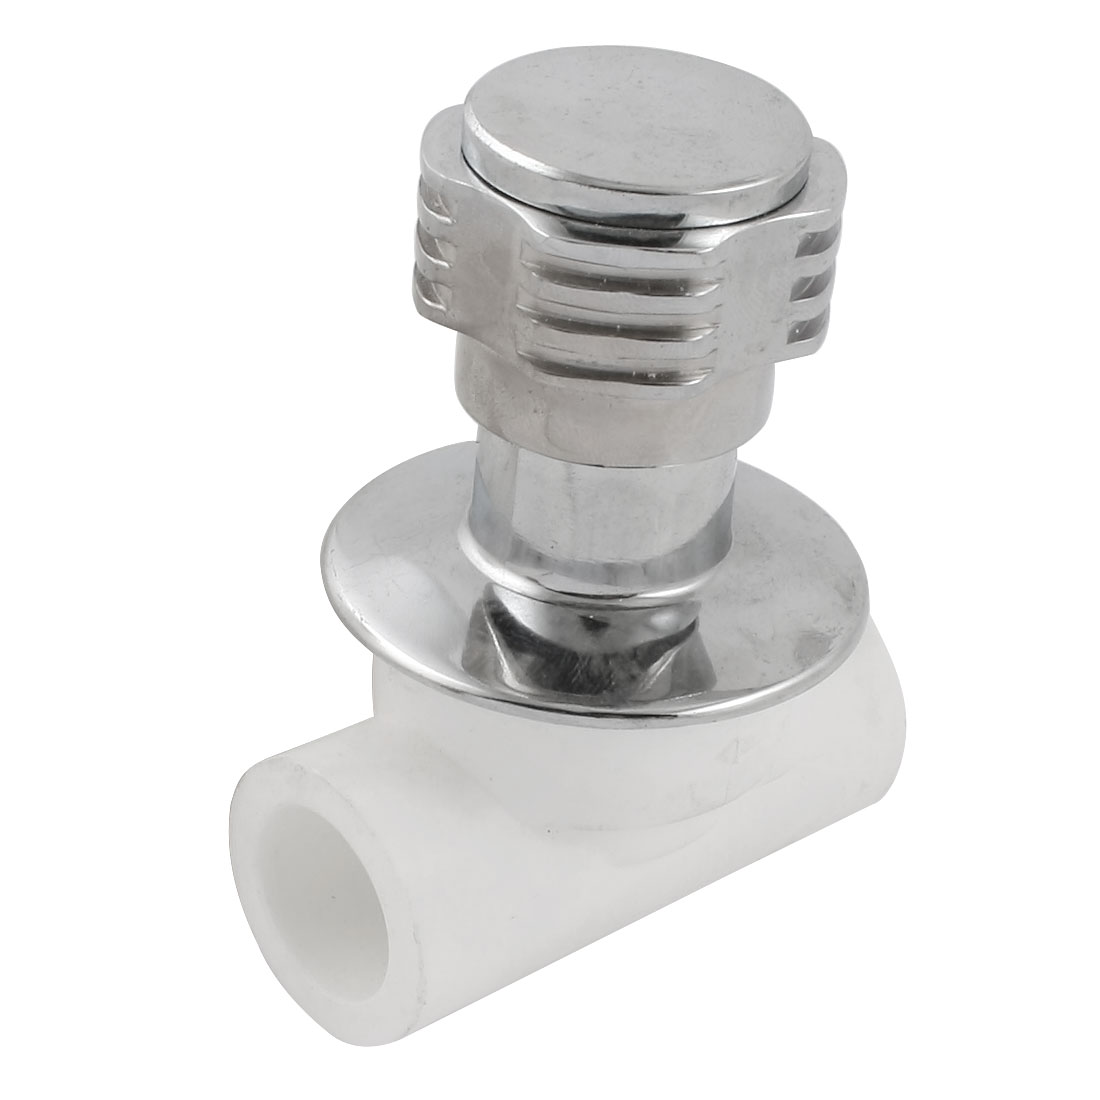 White Silver Tone Rotatable Handle Water Concealed Stop Valve 24mm x 24mm